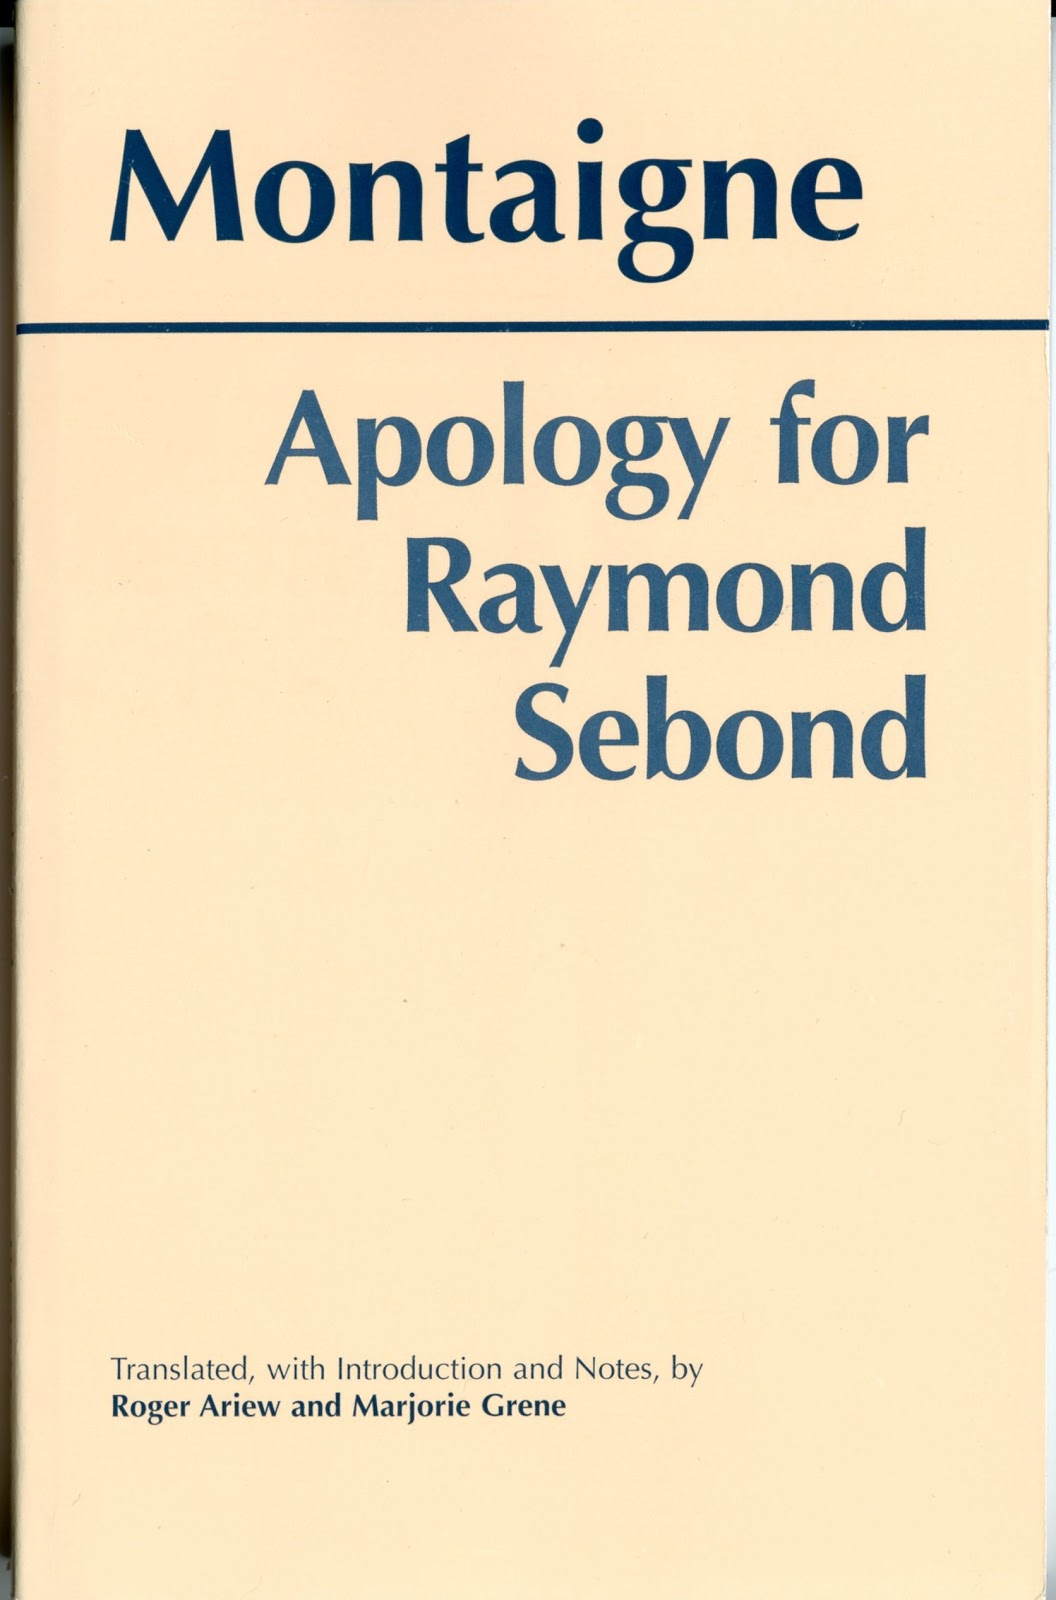 montaigne essays apology for raymond sebond related posts to montaigne essays apology for raymond sebond